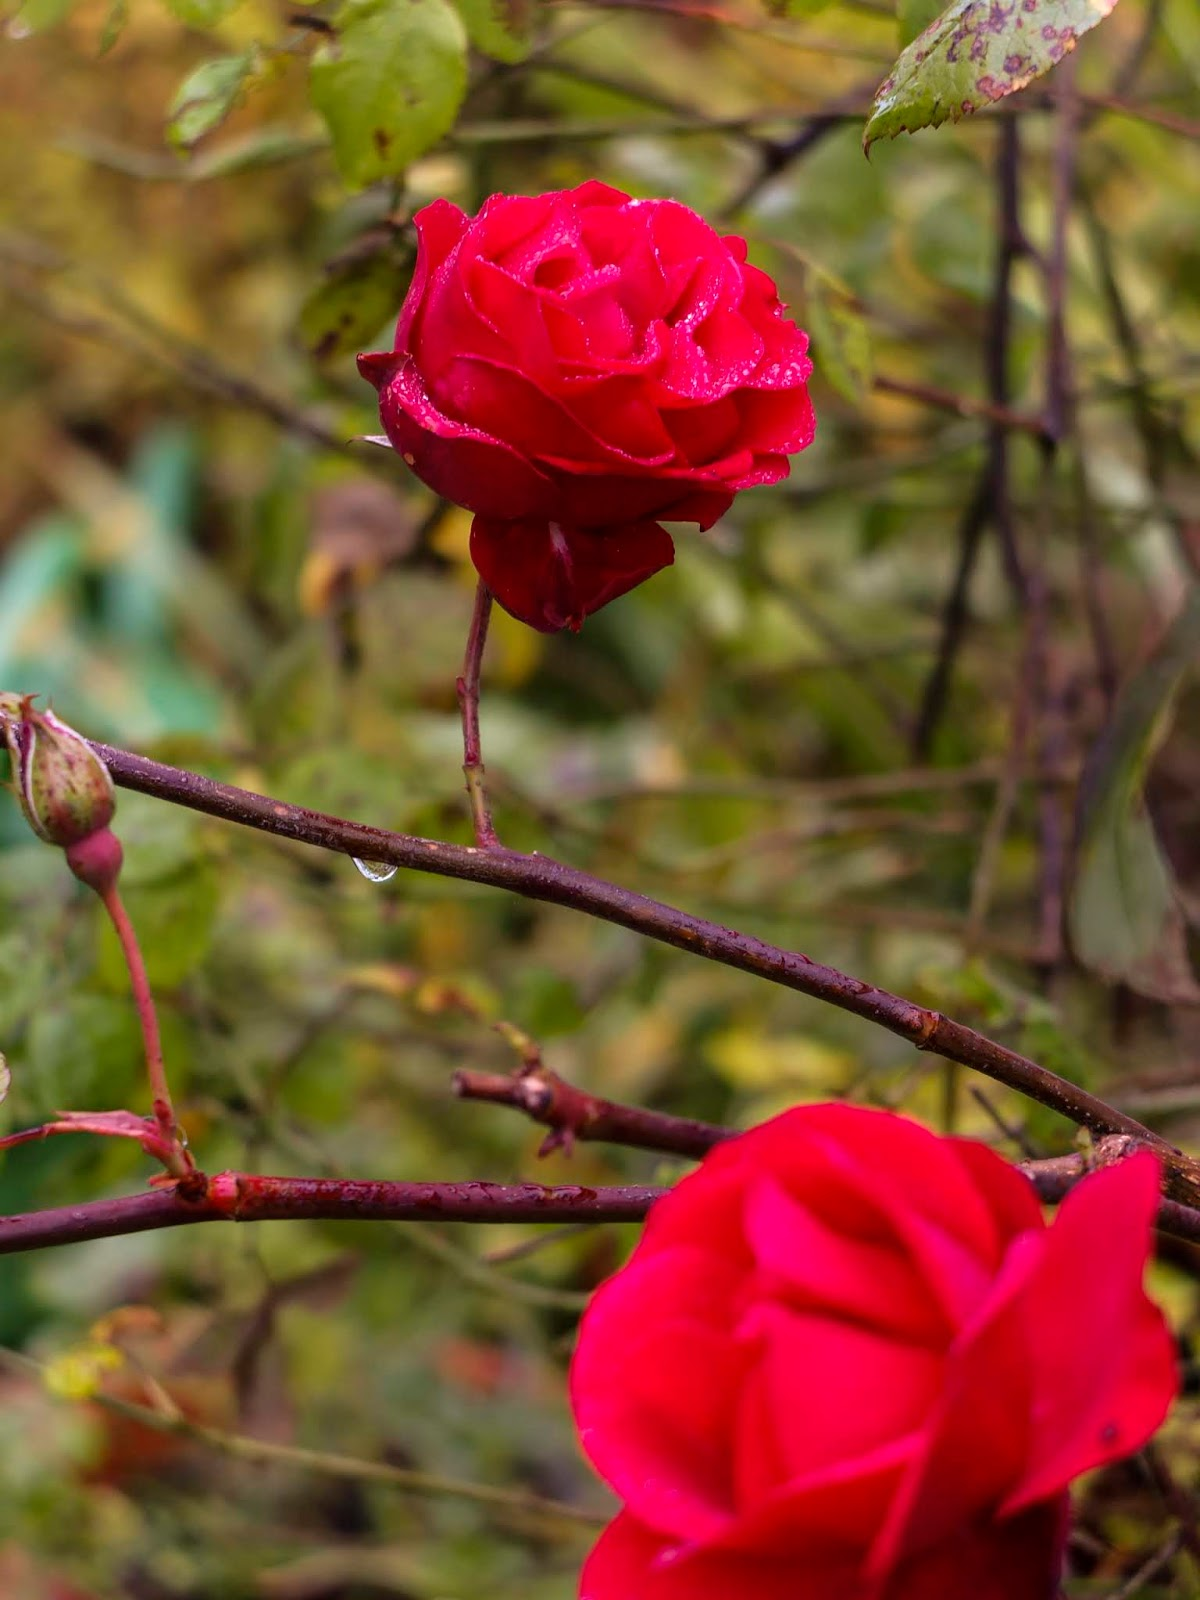 Two red roses among bare branches.